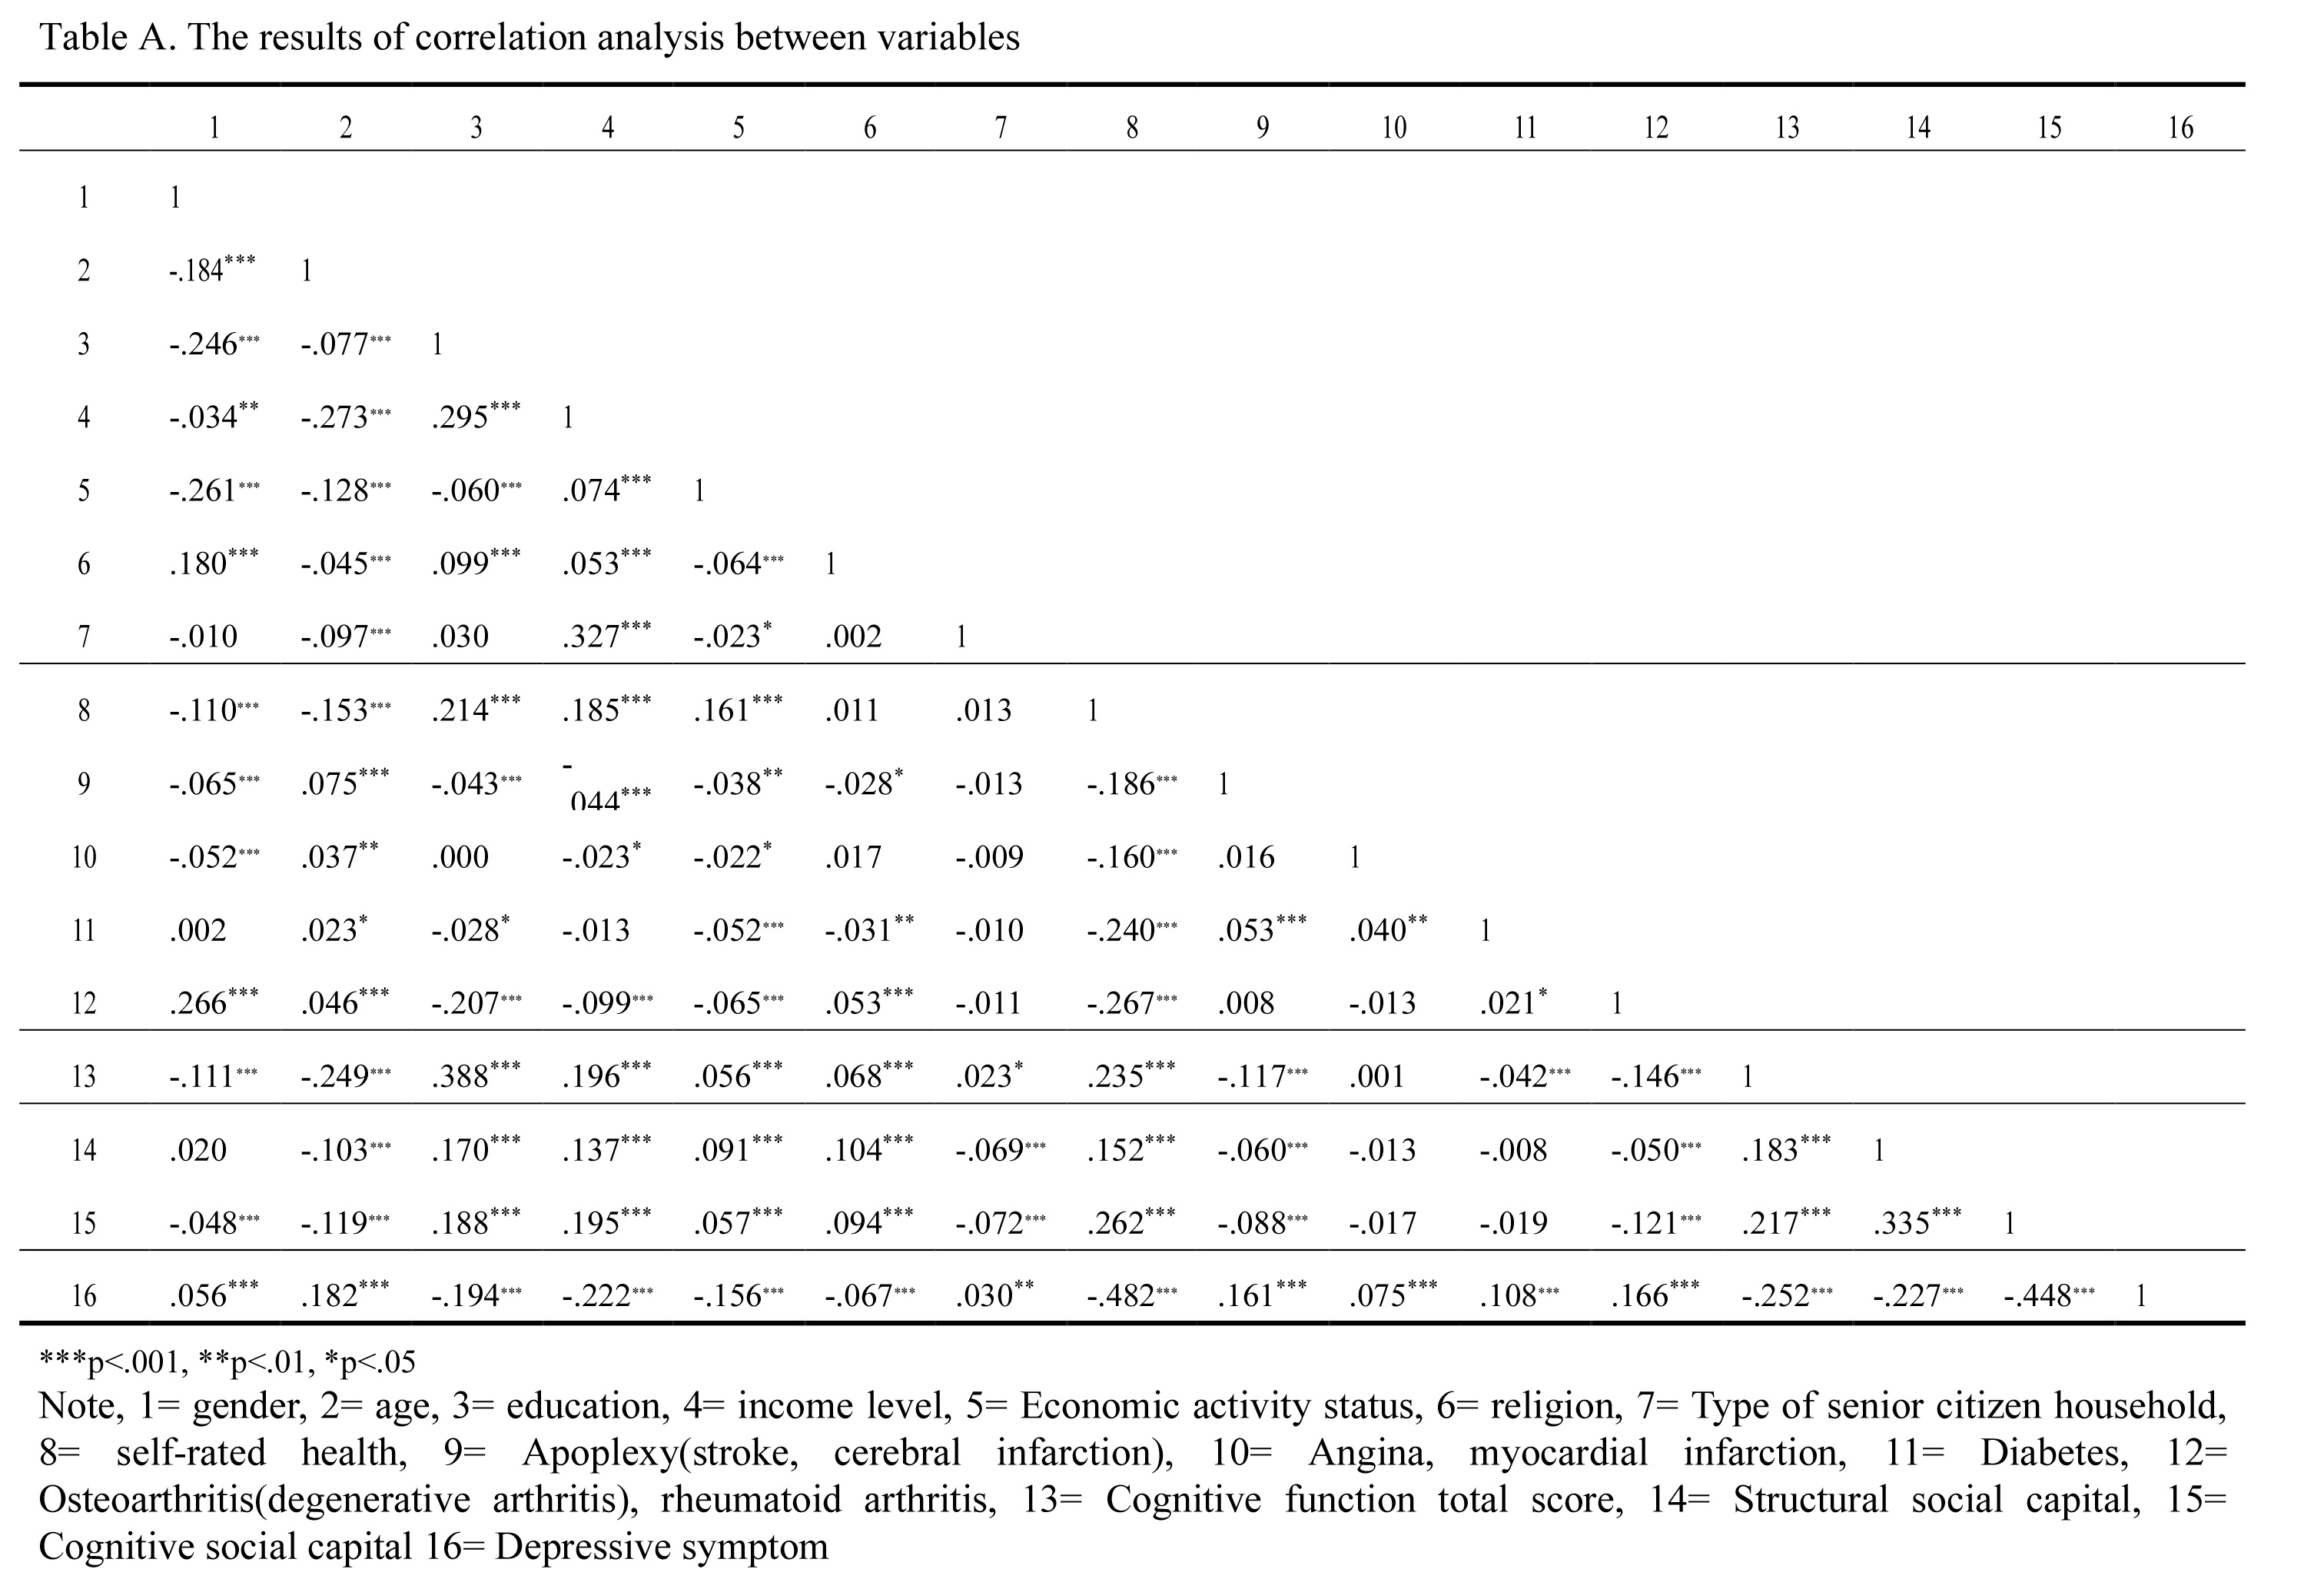 The results of correlation analysis between variables